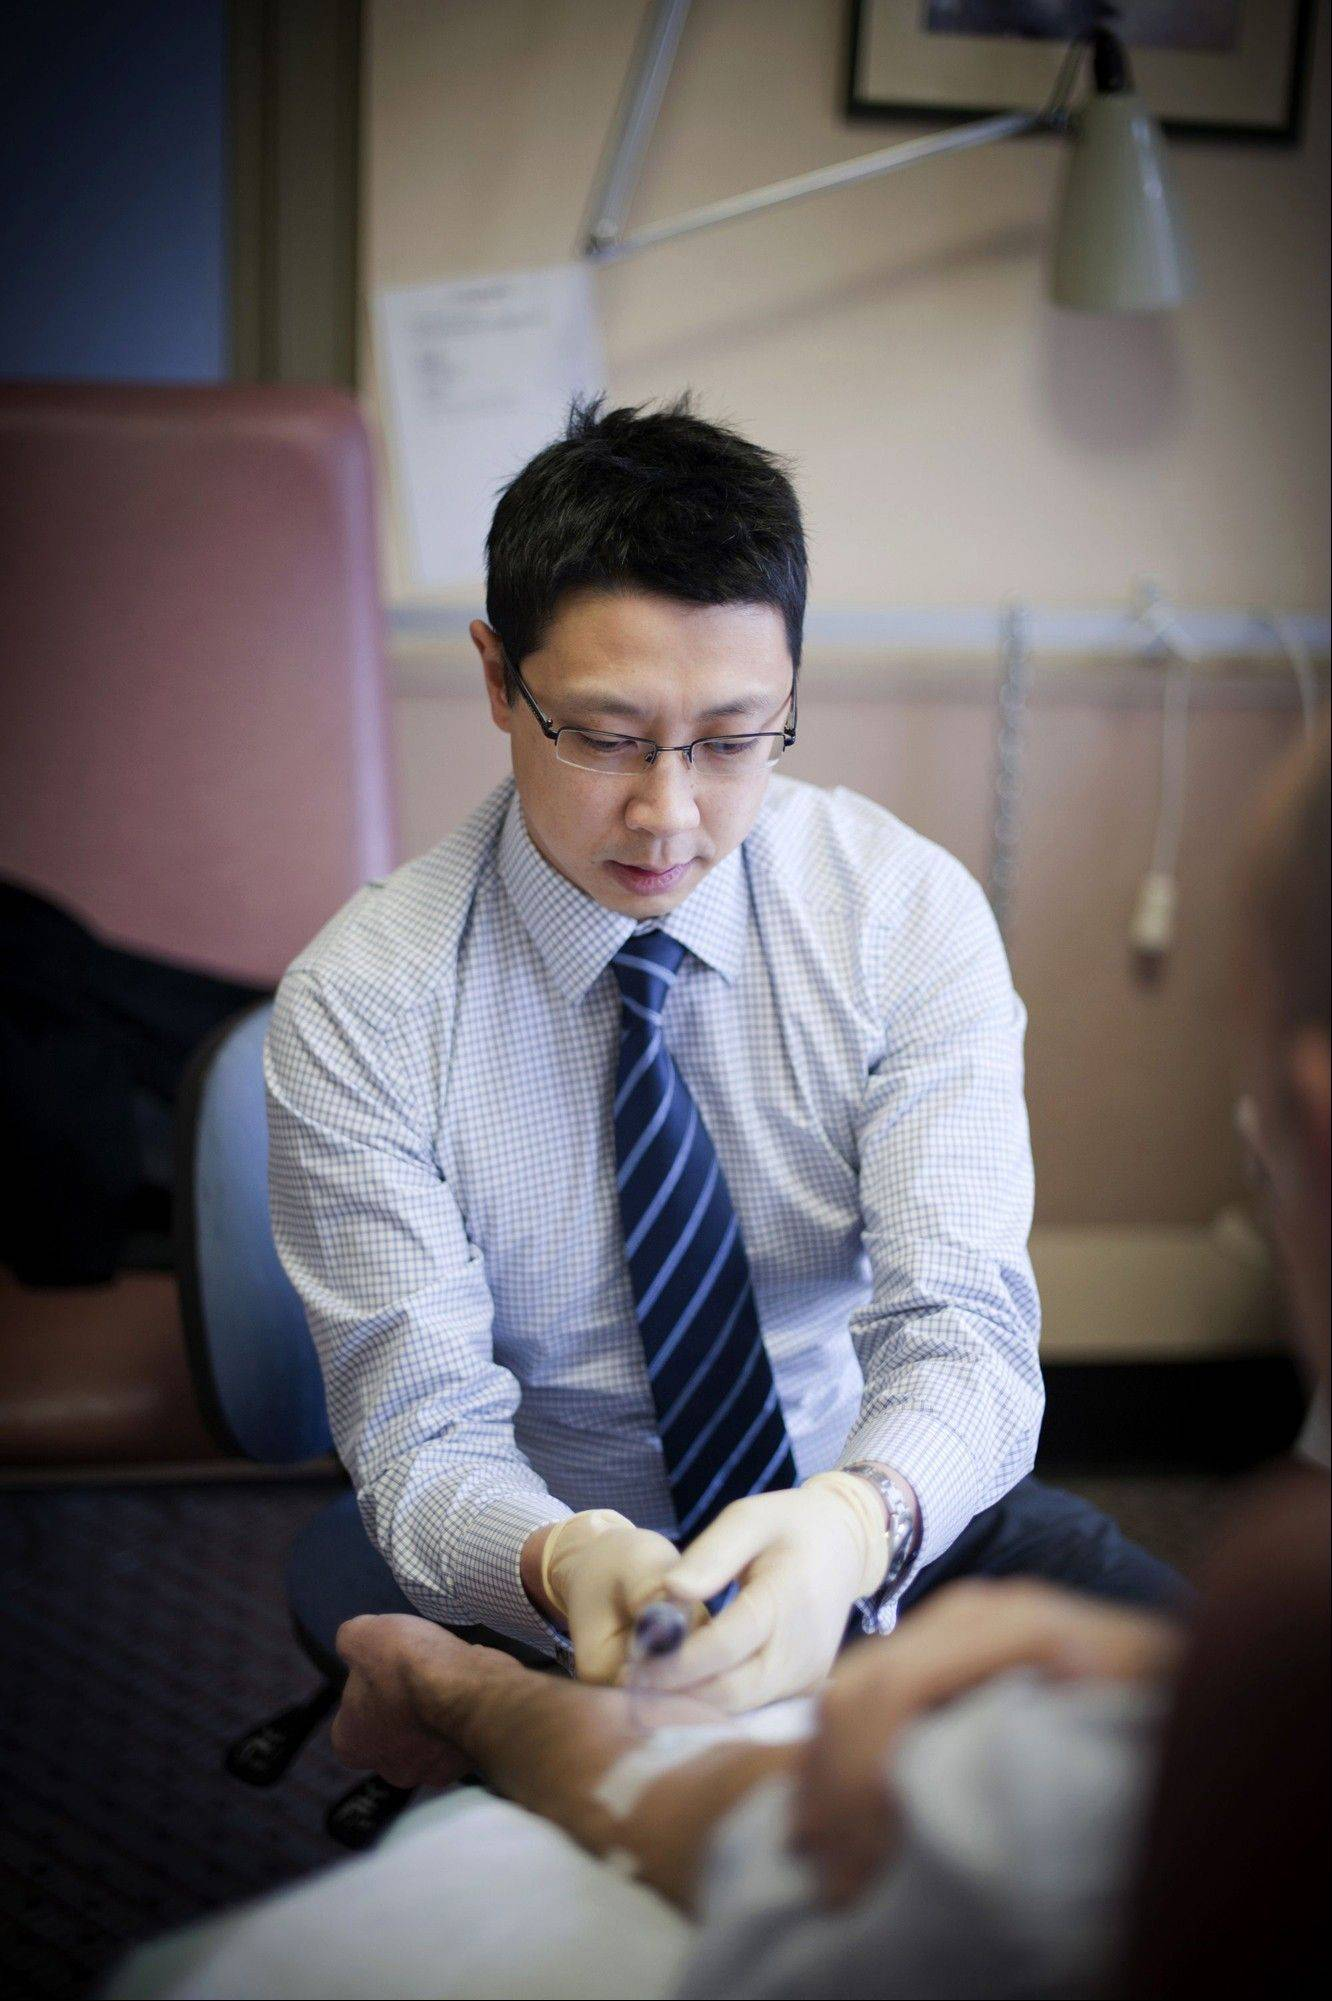 Dr. Jason Tye-Din collects blood from a patient at the Walter and Eliza Hall Institute of Medical Research in Melbourne.